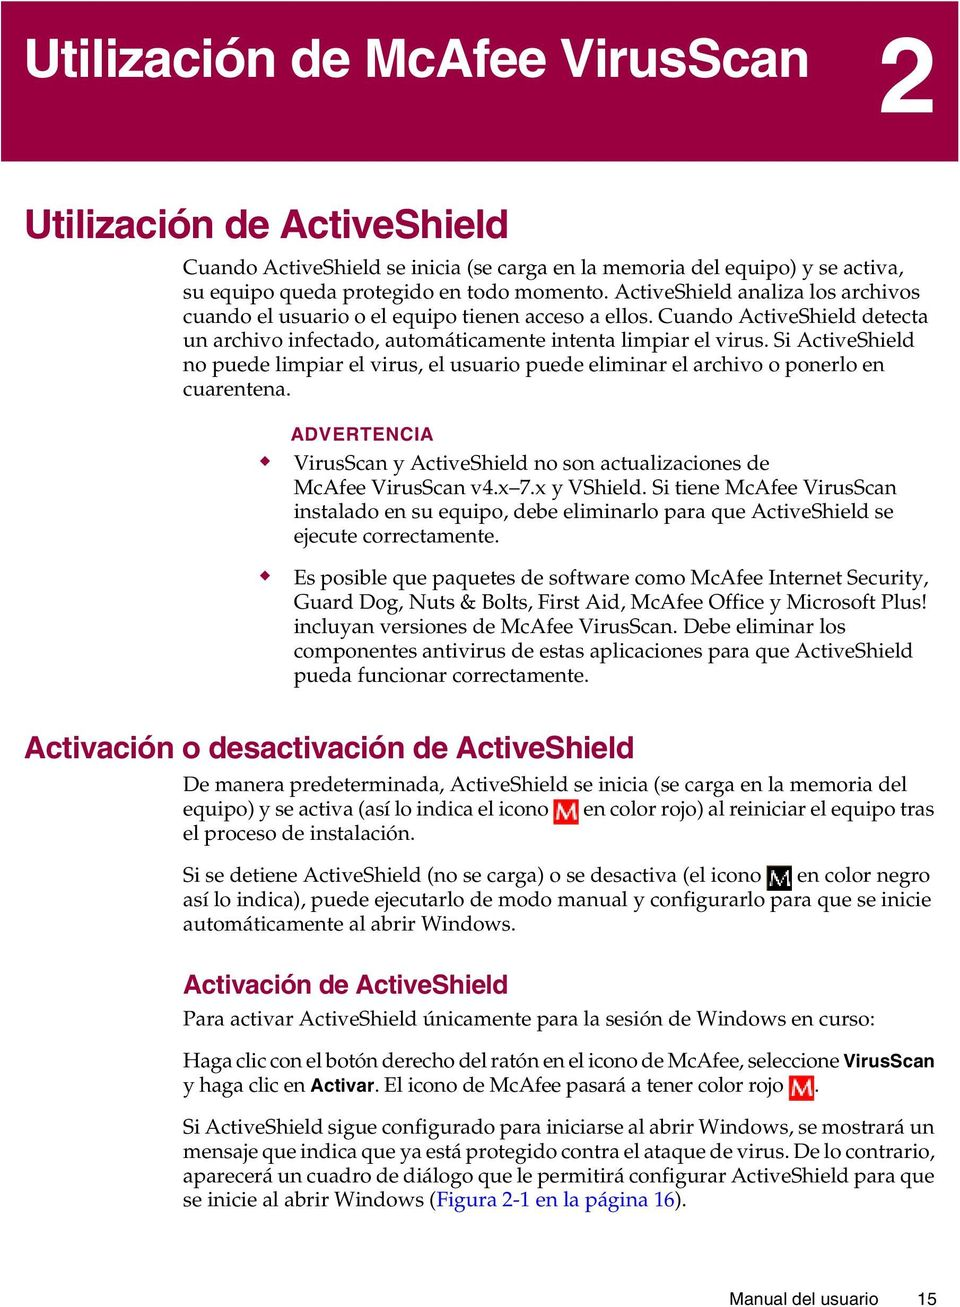 Si ActiveShield no puede limpiar el virus, el usuario puede eliminar el archivo o ponerlo en cuarentena. ADVERTENCIA VirusScan y ActiveShield no son actualizaciones de McAfee VirusScan v4.x 7.